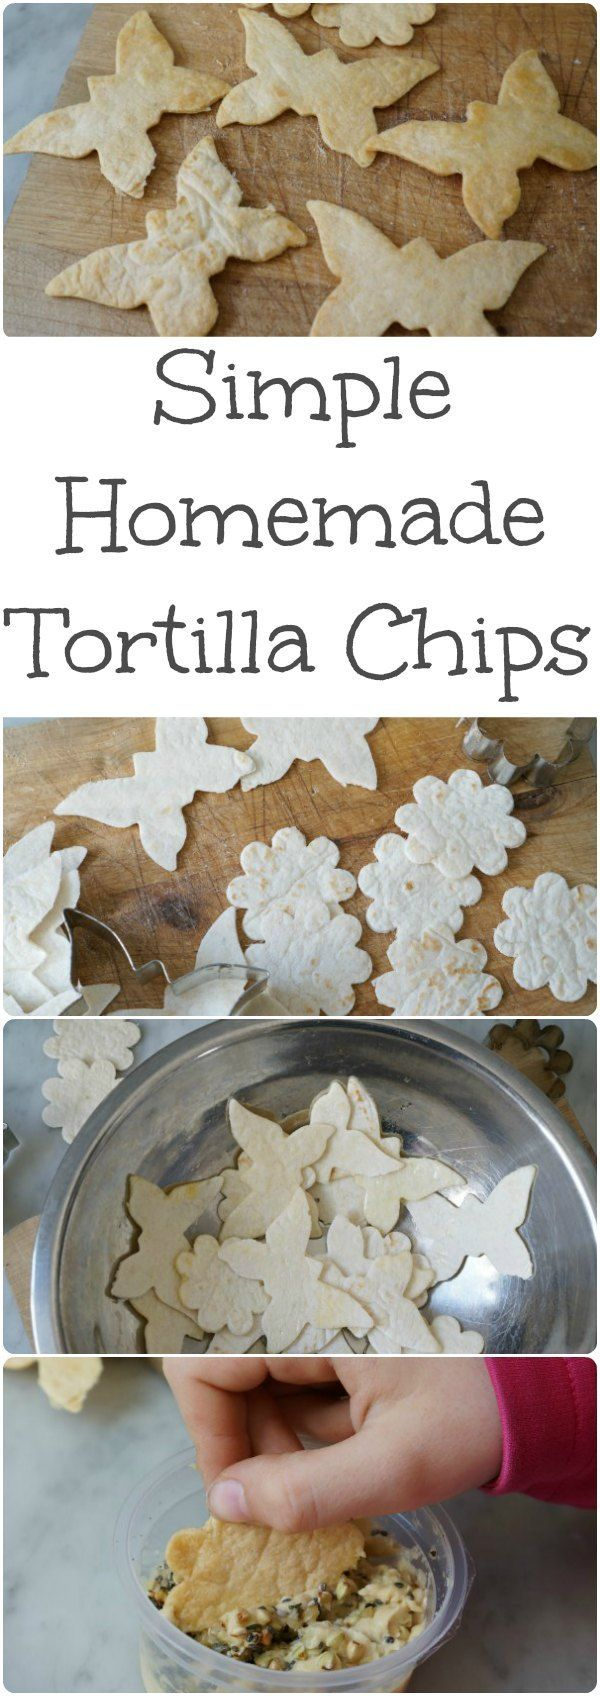 Bake a batch of super crispy homemade tortilla chips - a healthy after school snack treat that kids love. A simple family friendly recipe.